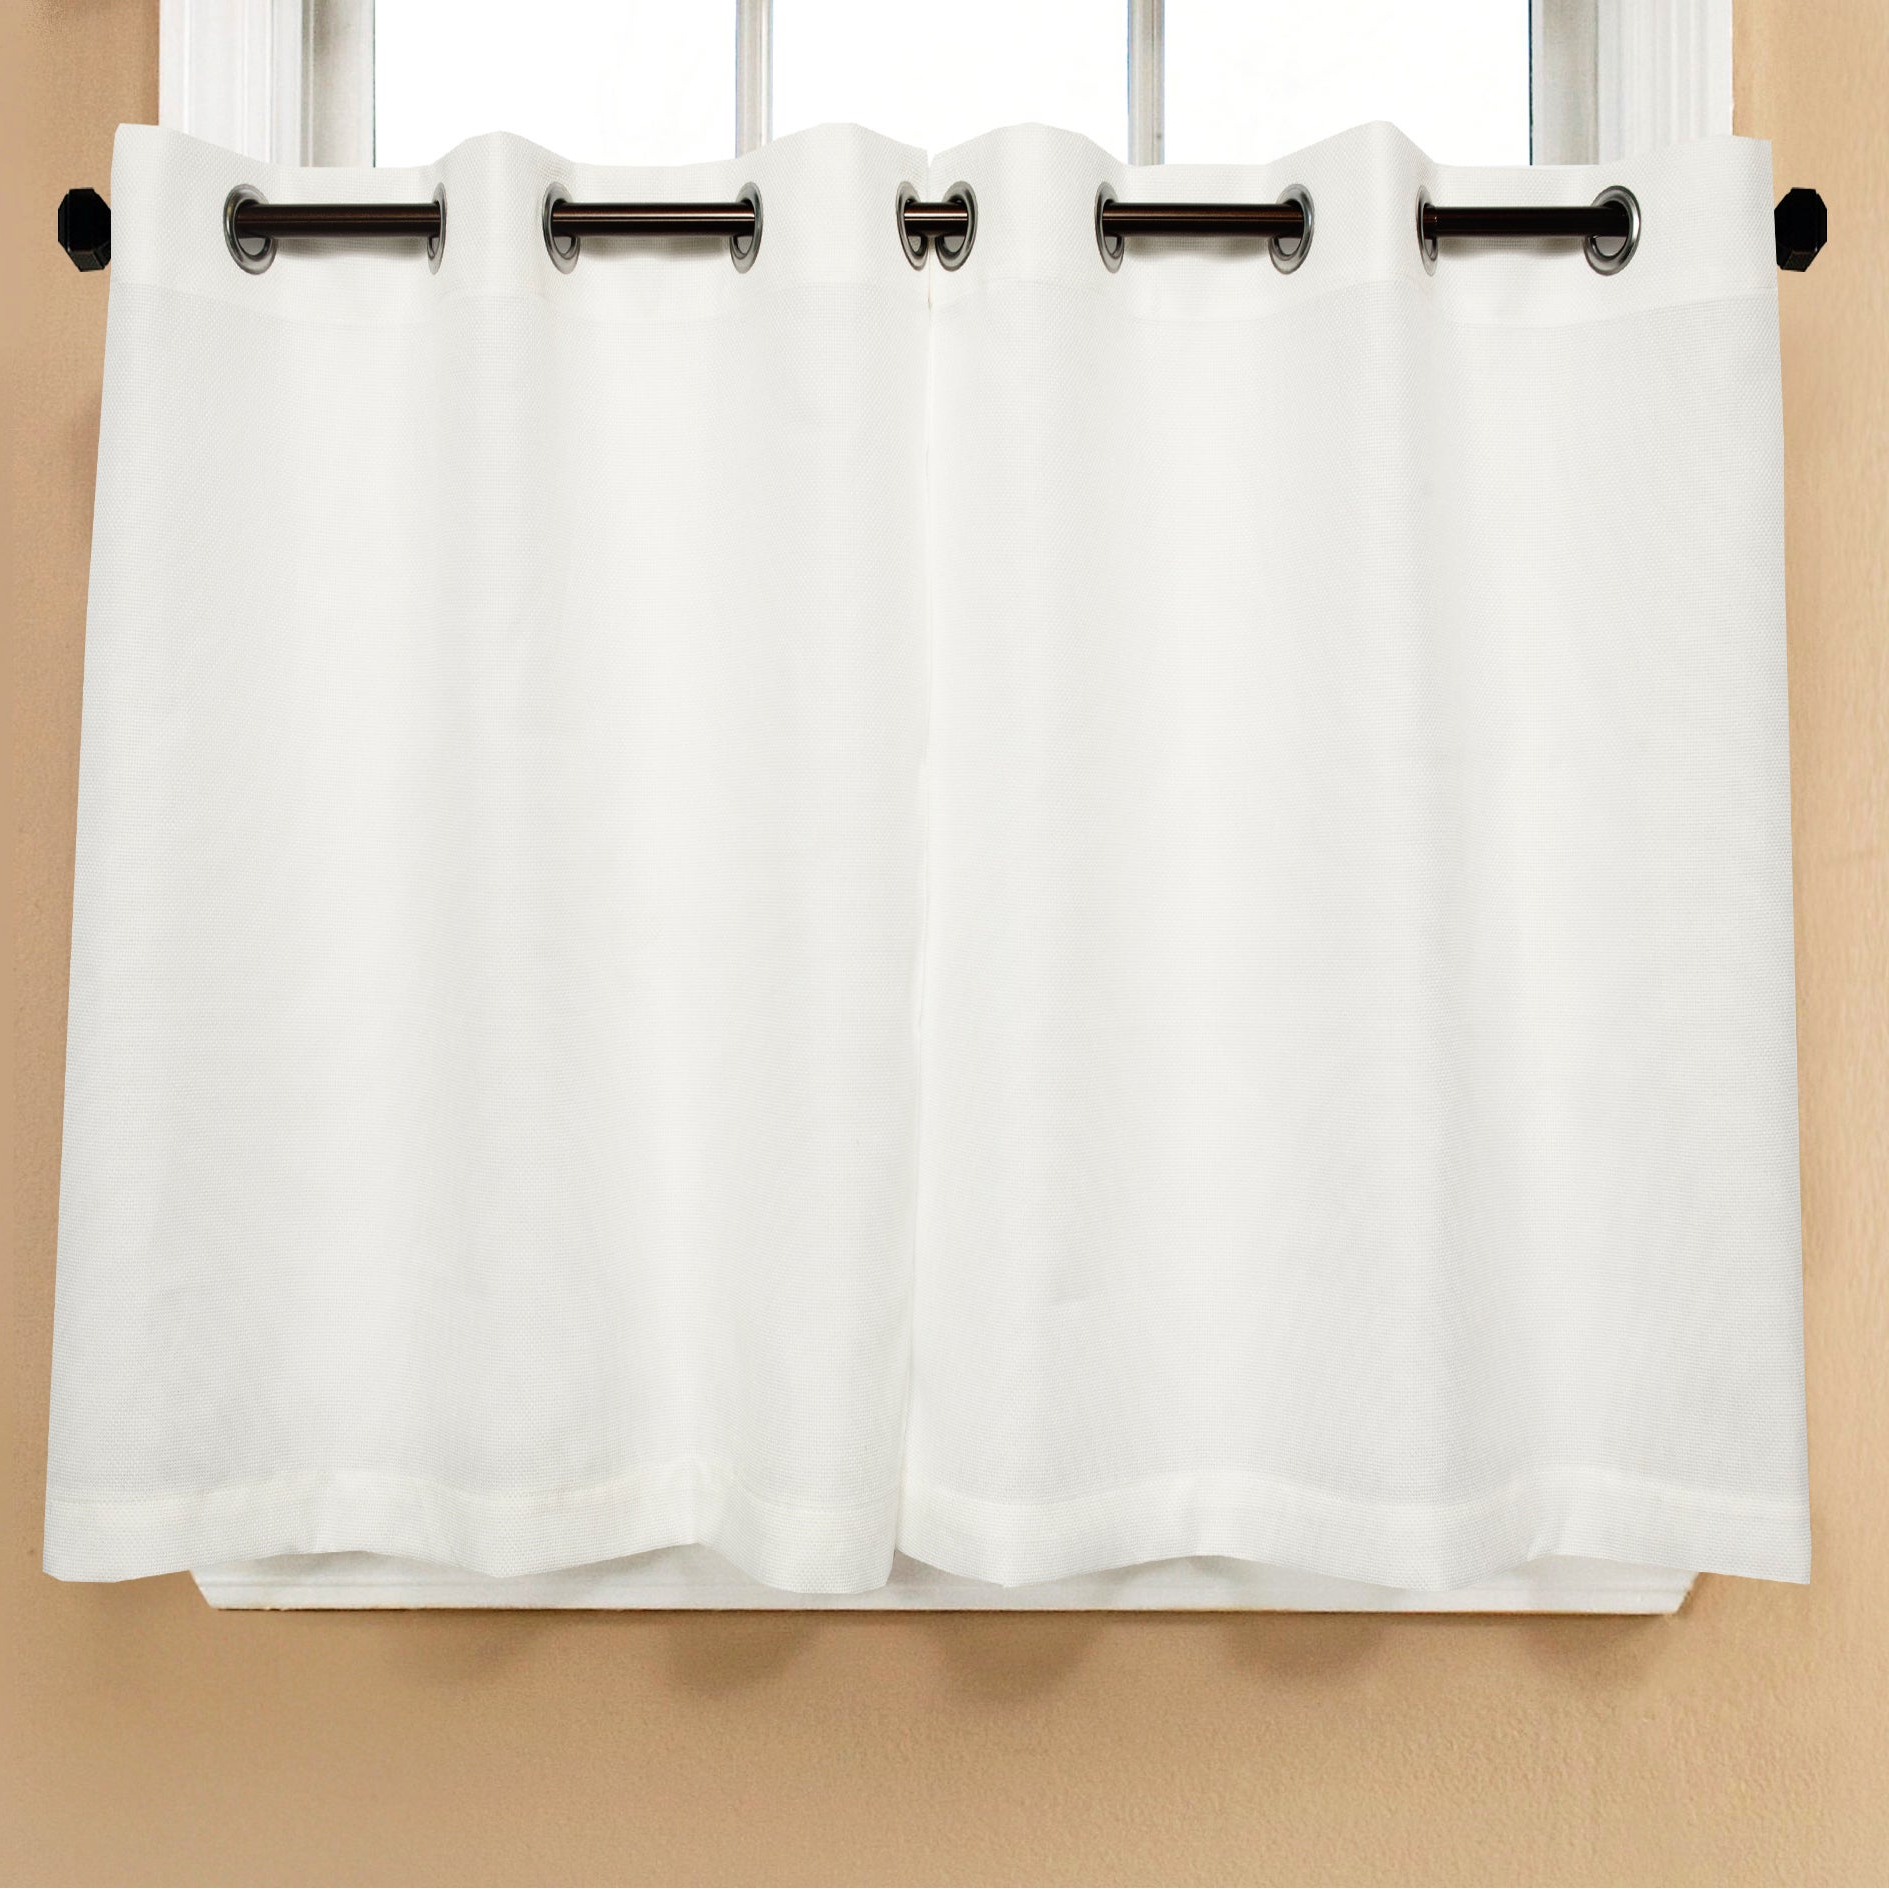 Modern Subtle Texture Solid White Kitchen Curtain Parts With Grommets Tier And Valance Options Inside Current Modern Subtle Texture Solid Red Kitchen Curtains (View 4 of 20)